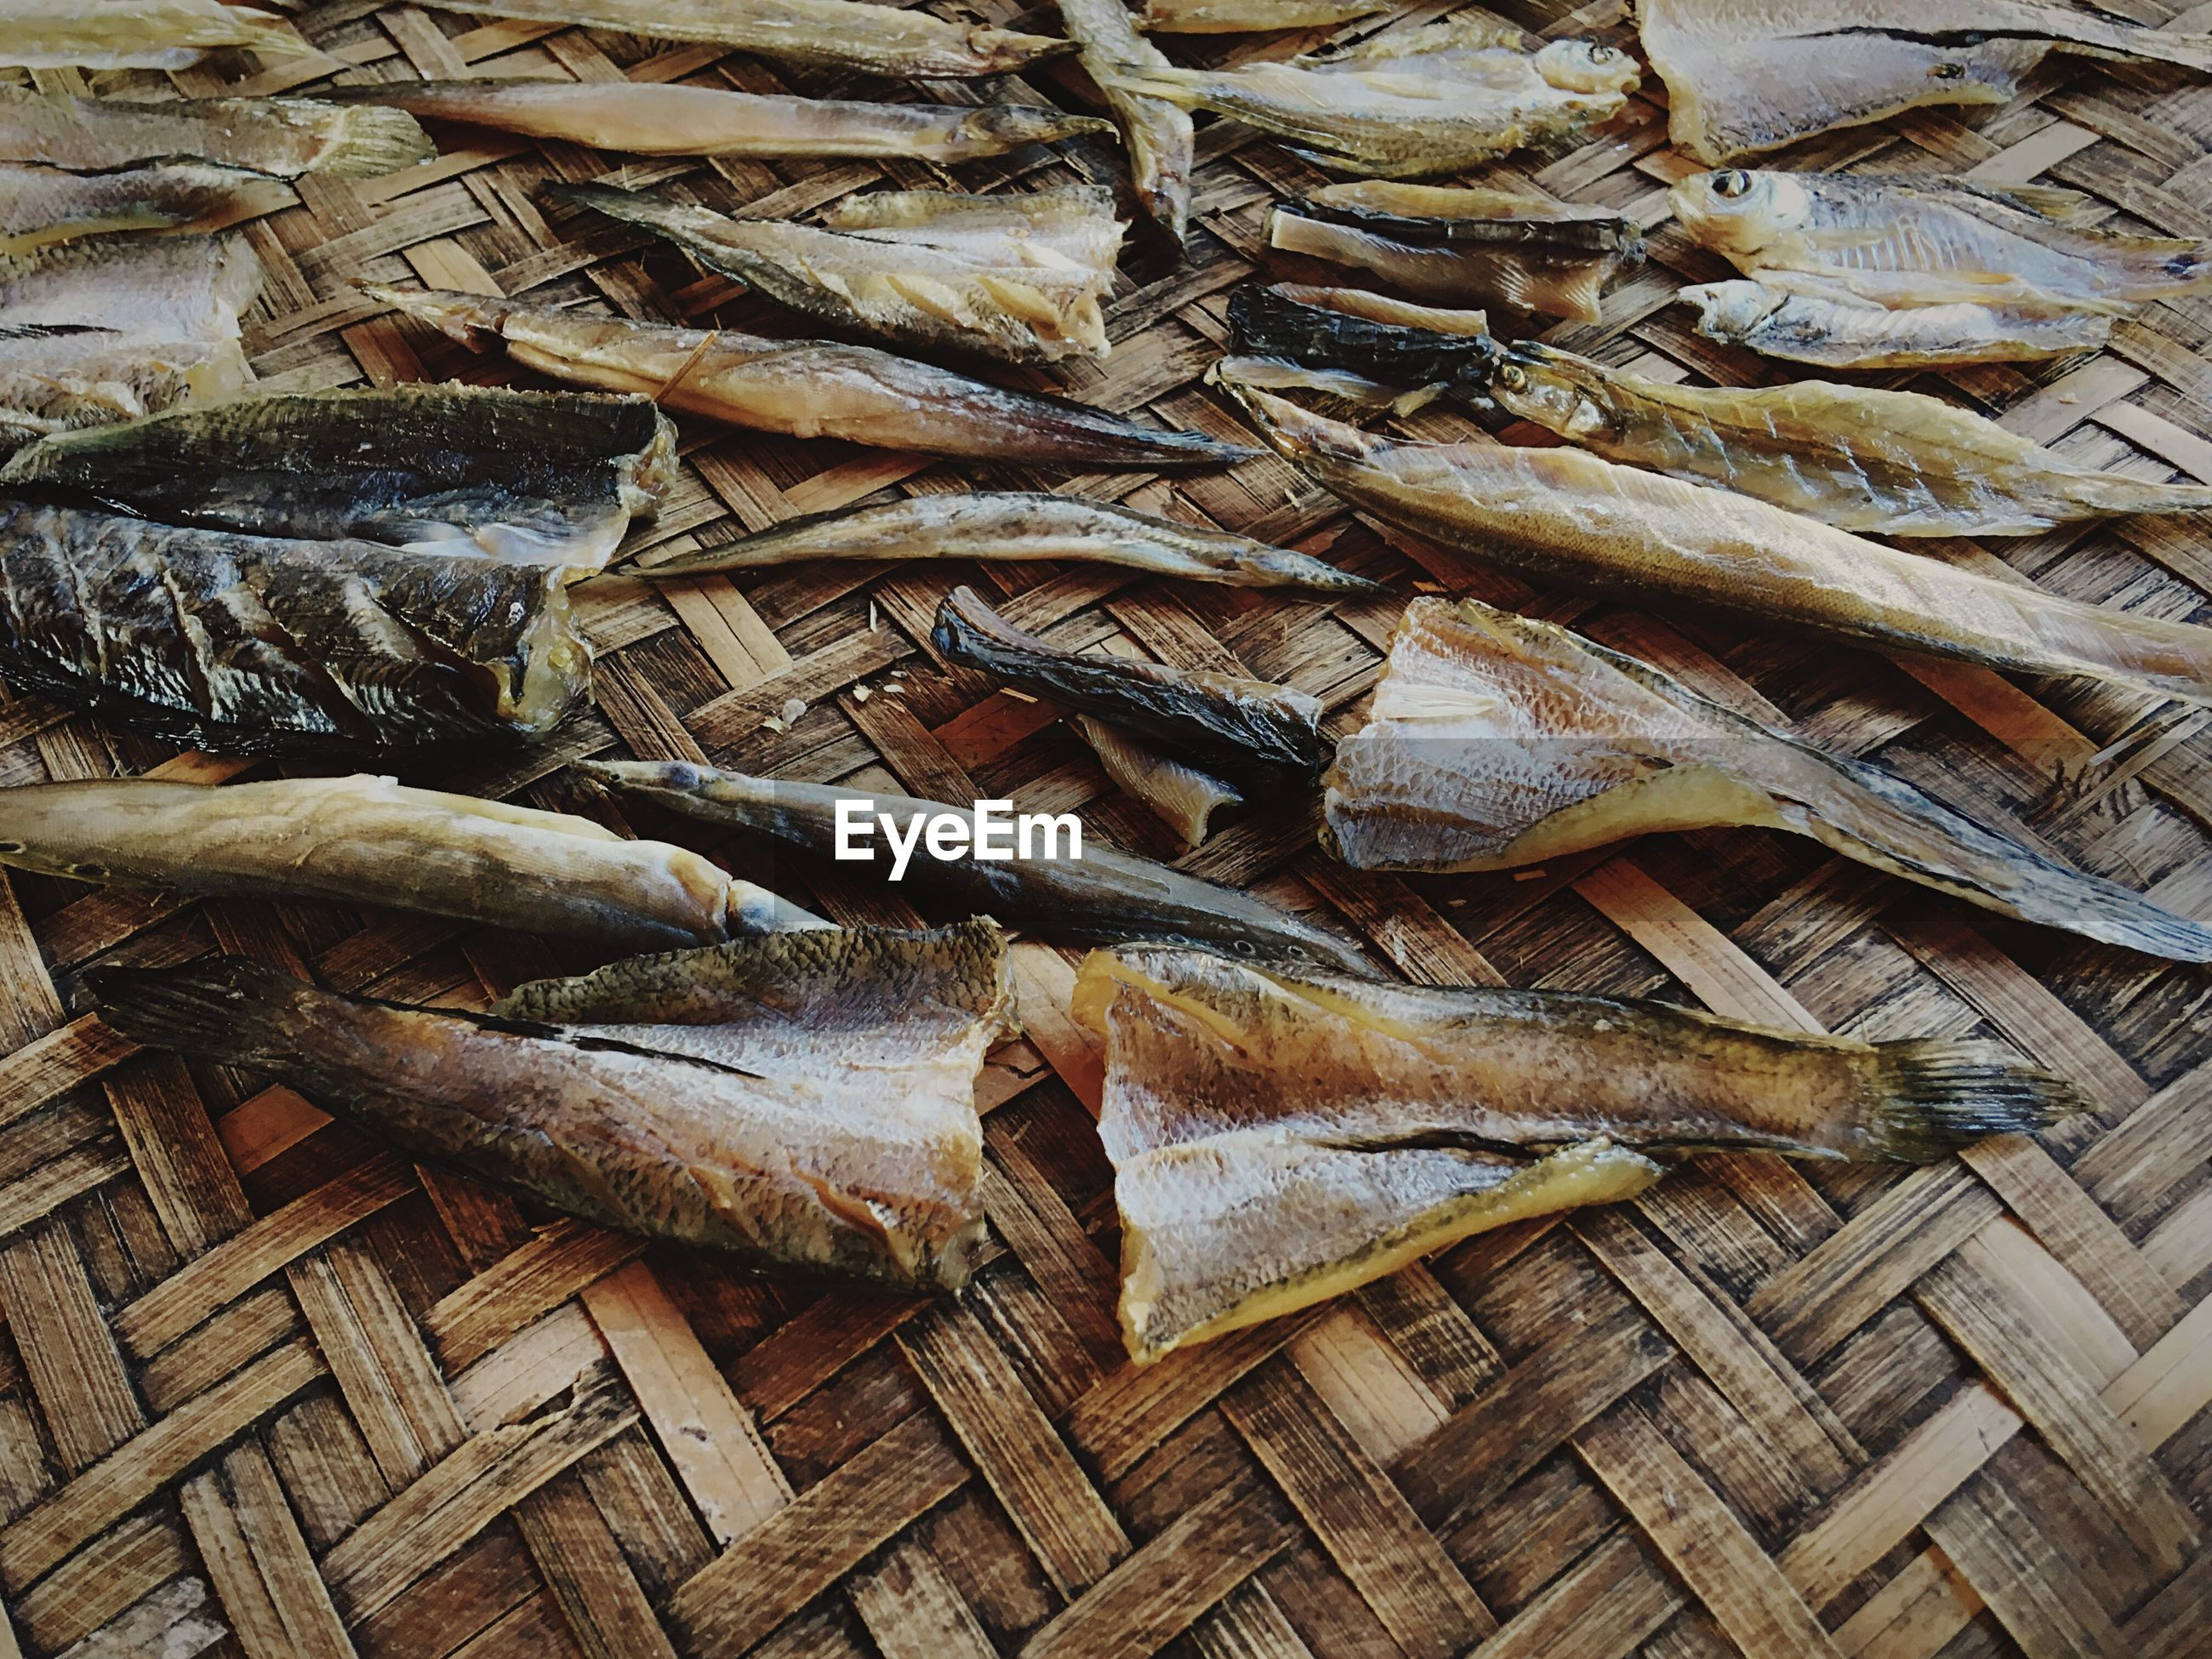 High angle view of dried fish on wicker